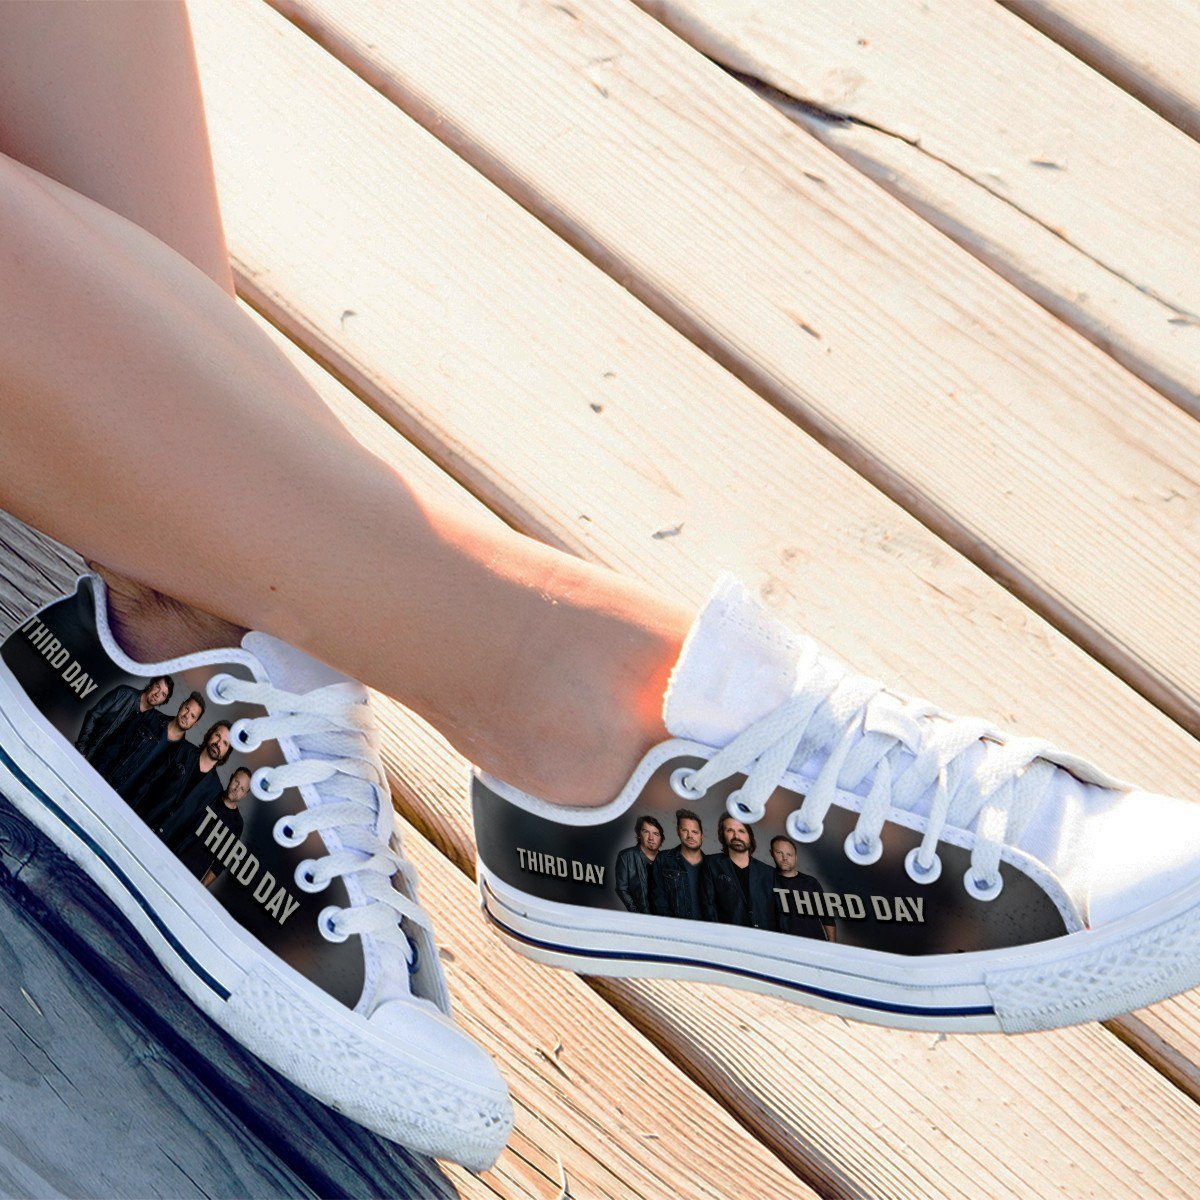 third day band ladies low cut sneakers